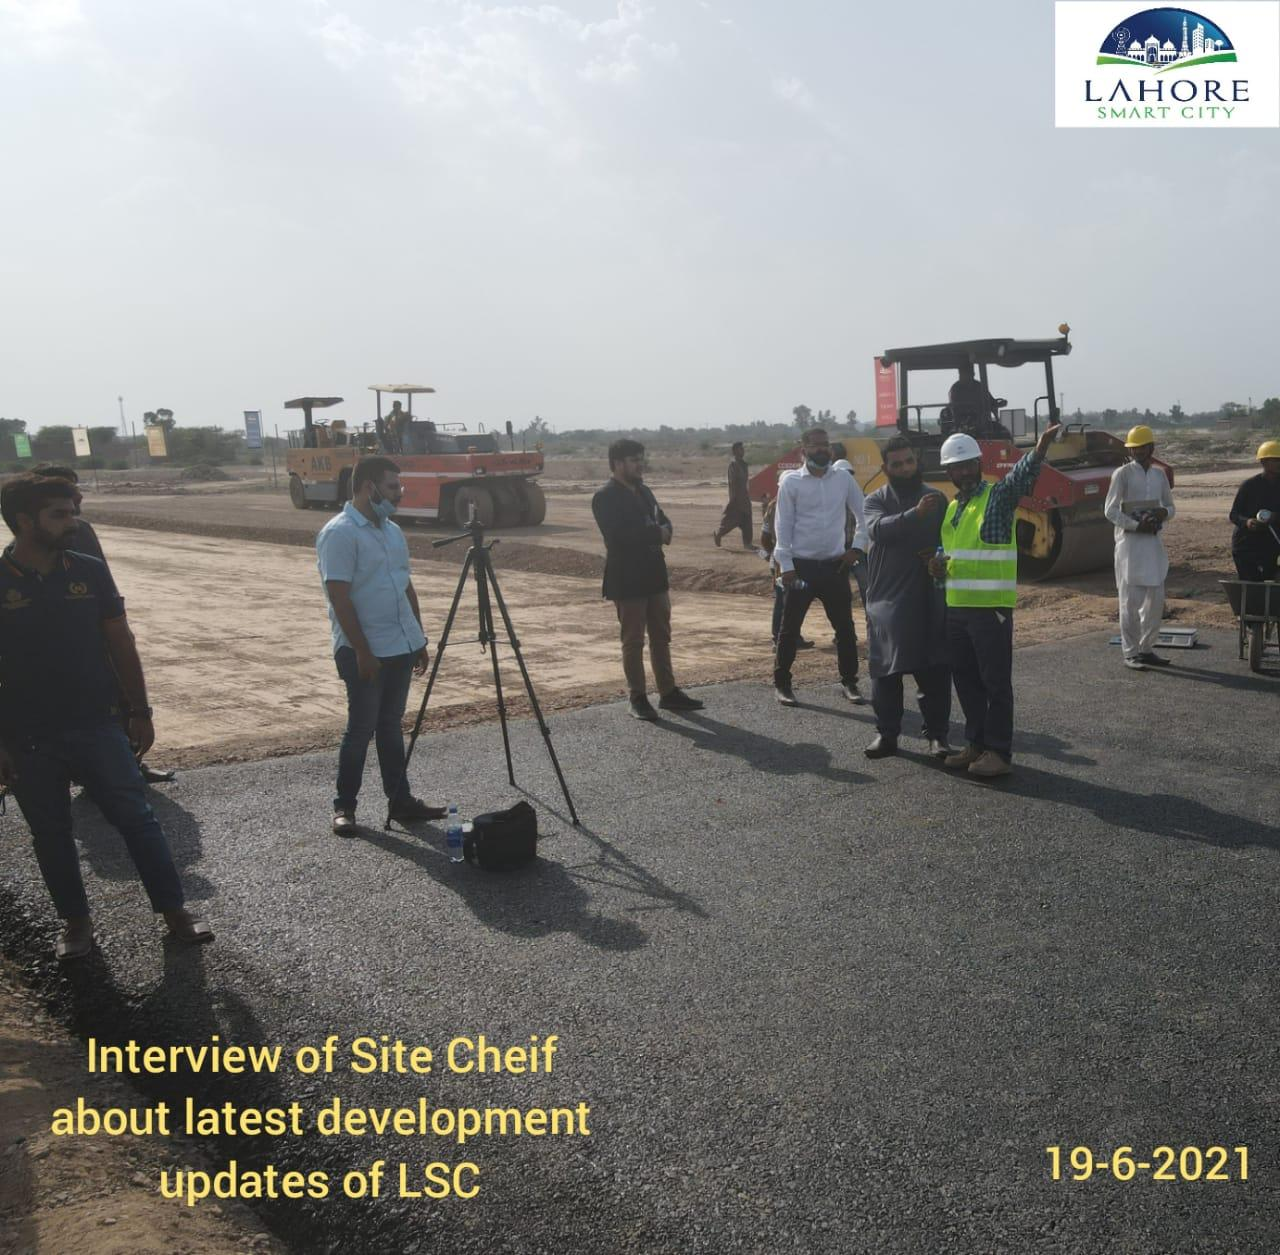 Interview of site cheif about latest development updates of LSC